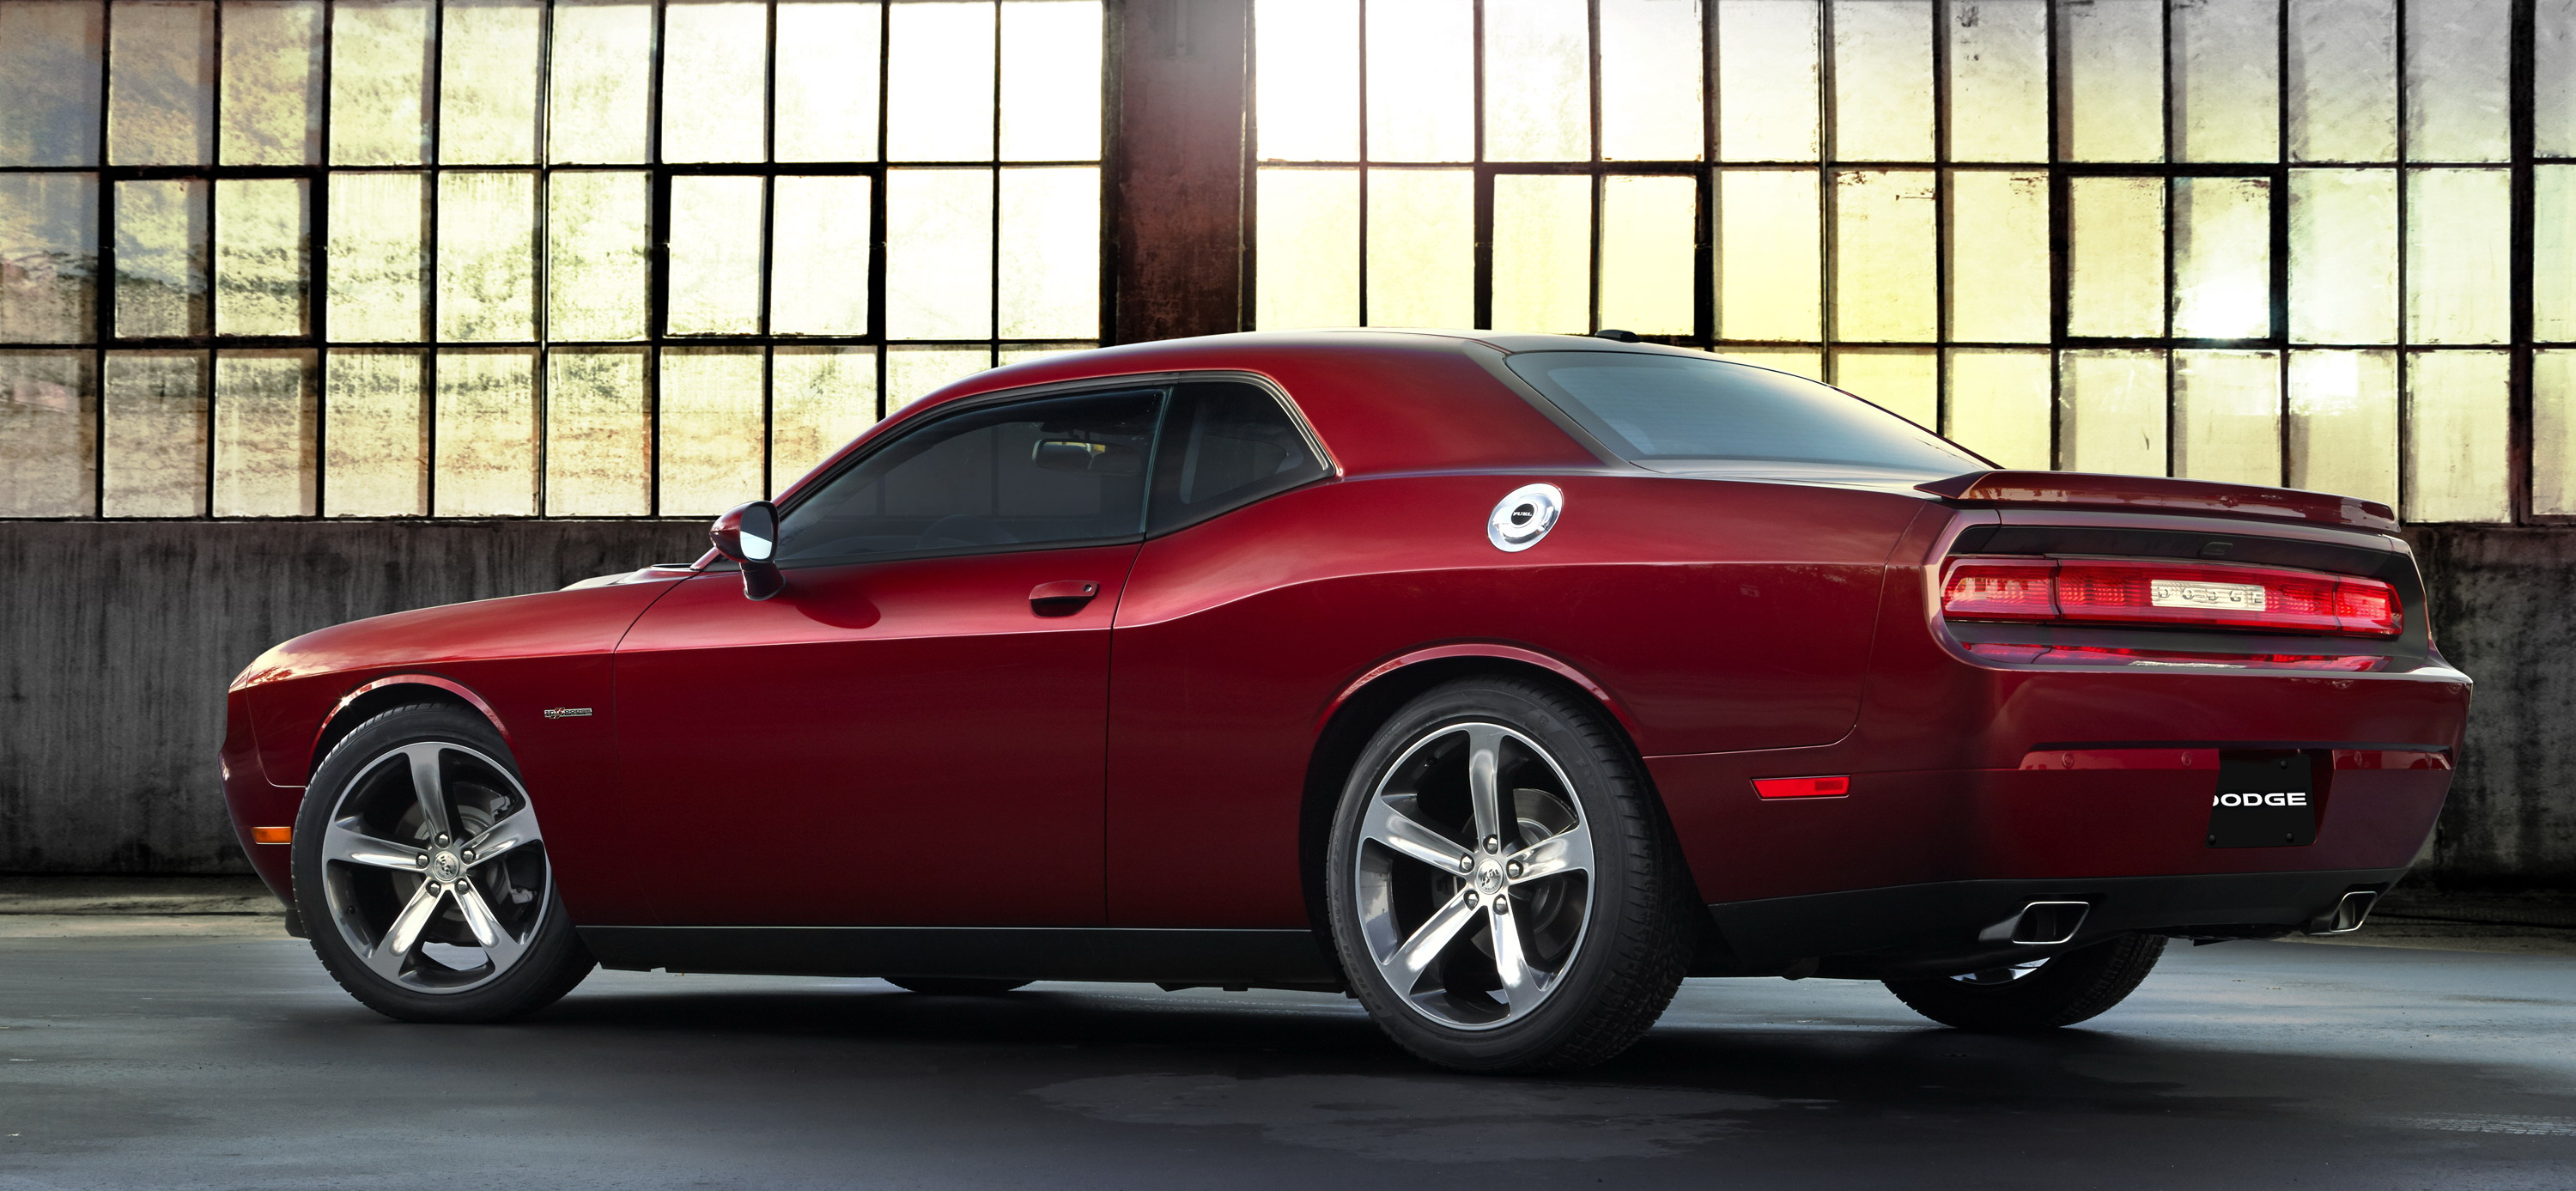 2014 Dodge Challenger 100th Anniversary Edition Top Speed